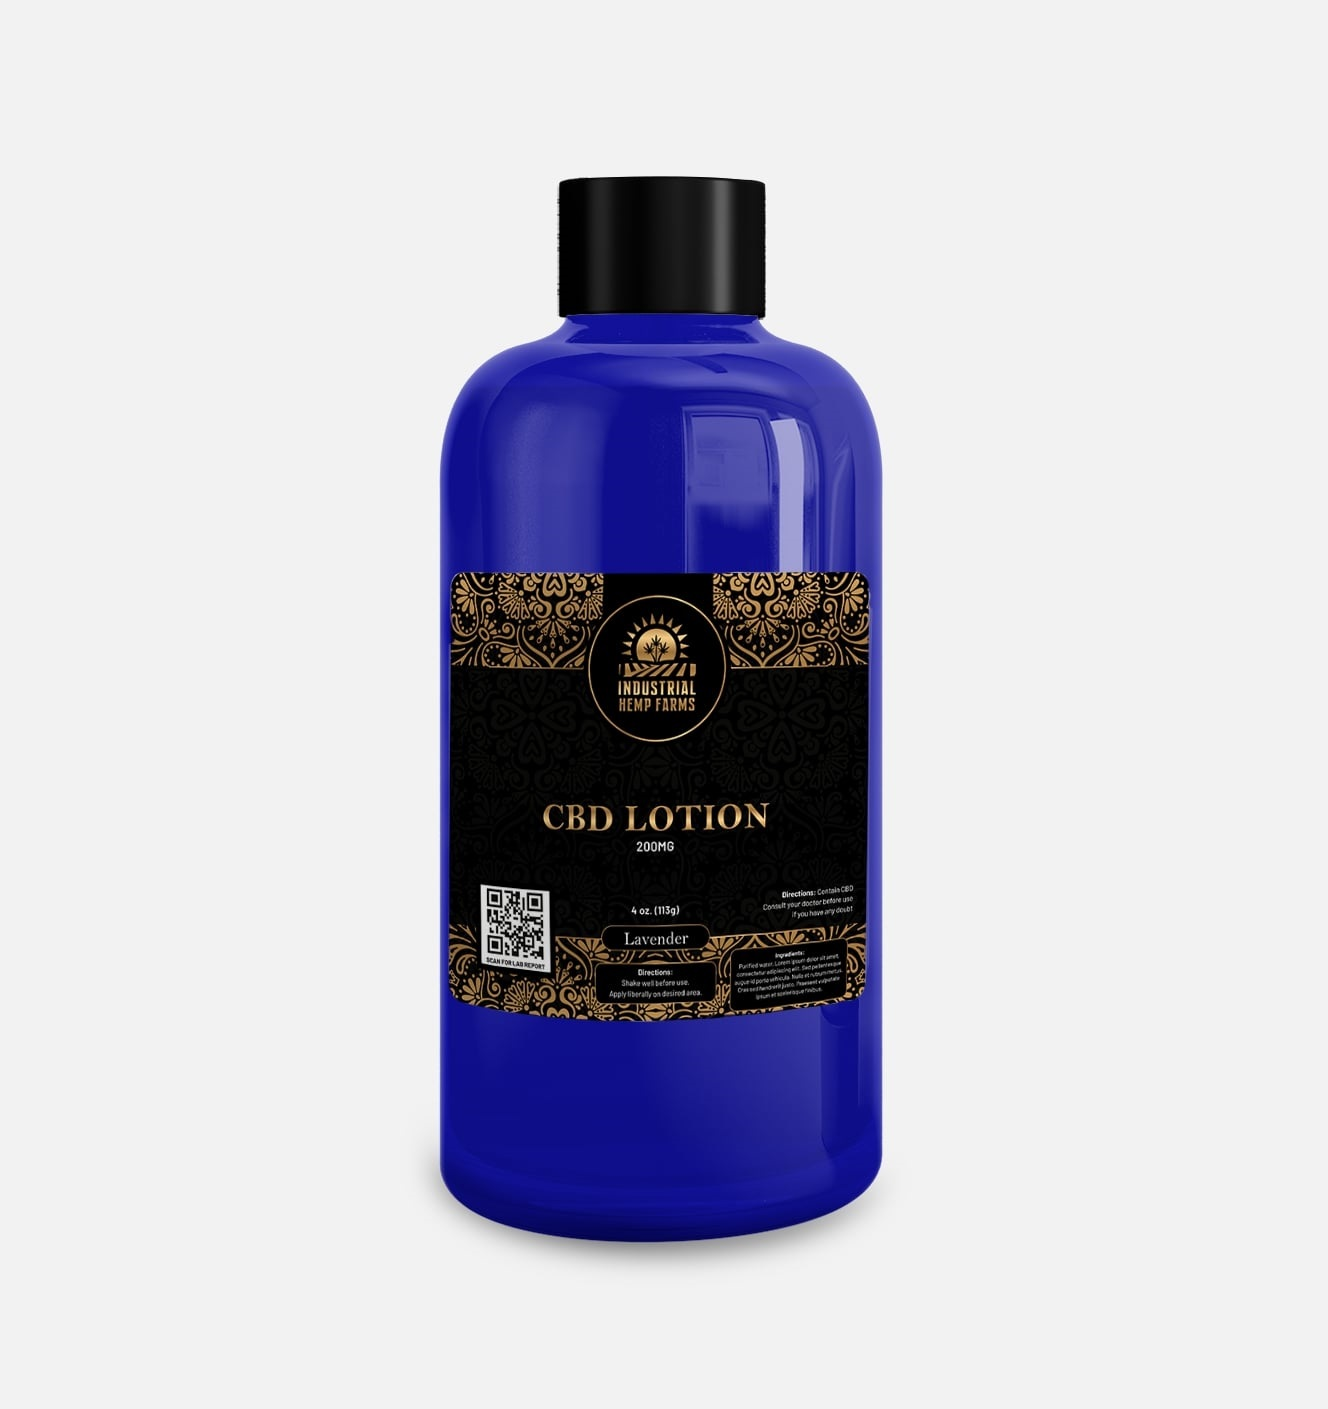 CBD lotion for sale online